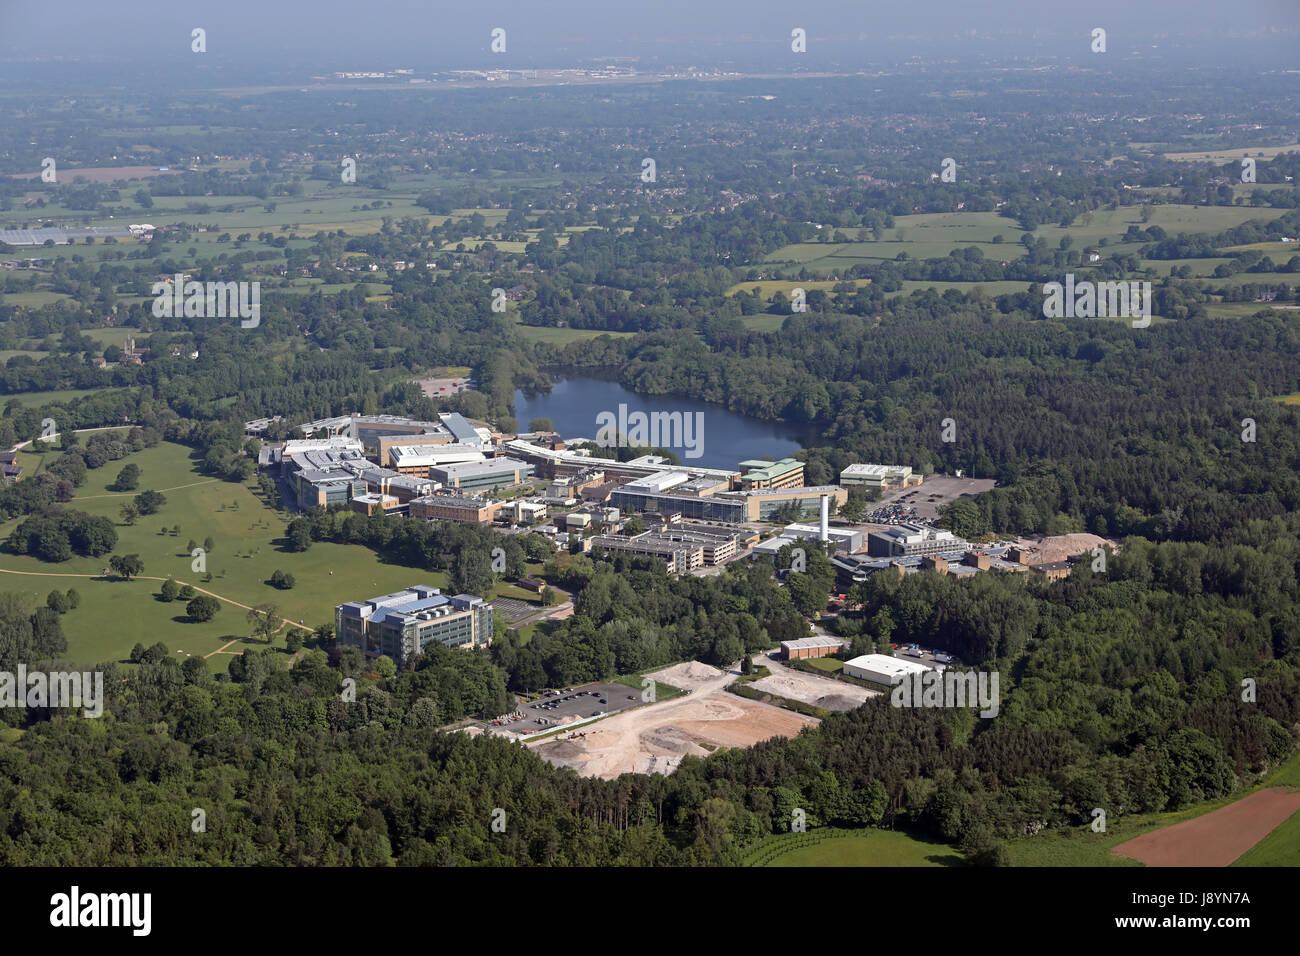 aerial view of Alderley Park in Cheshire, UK - Stock Image